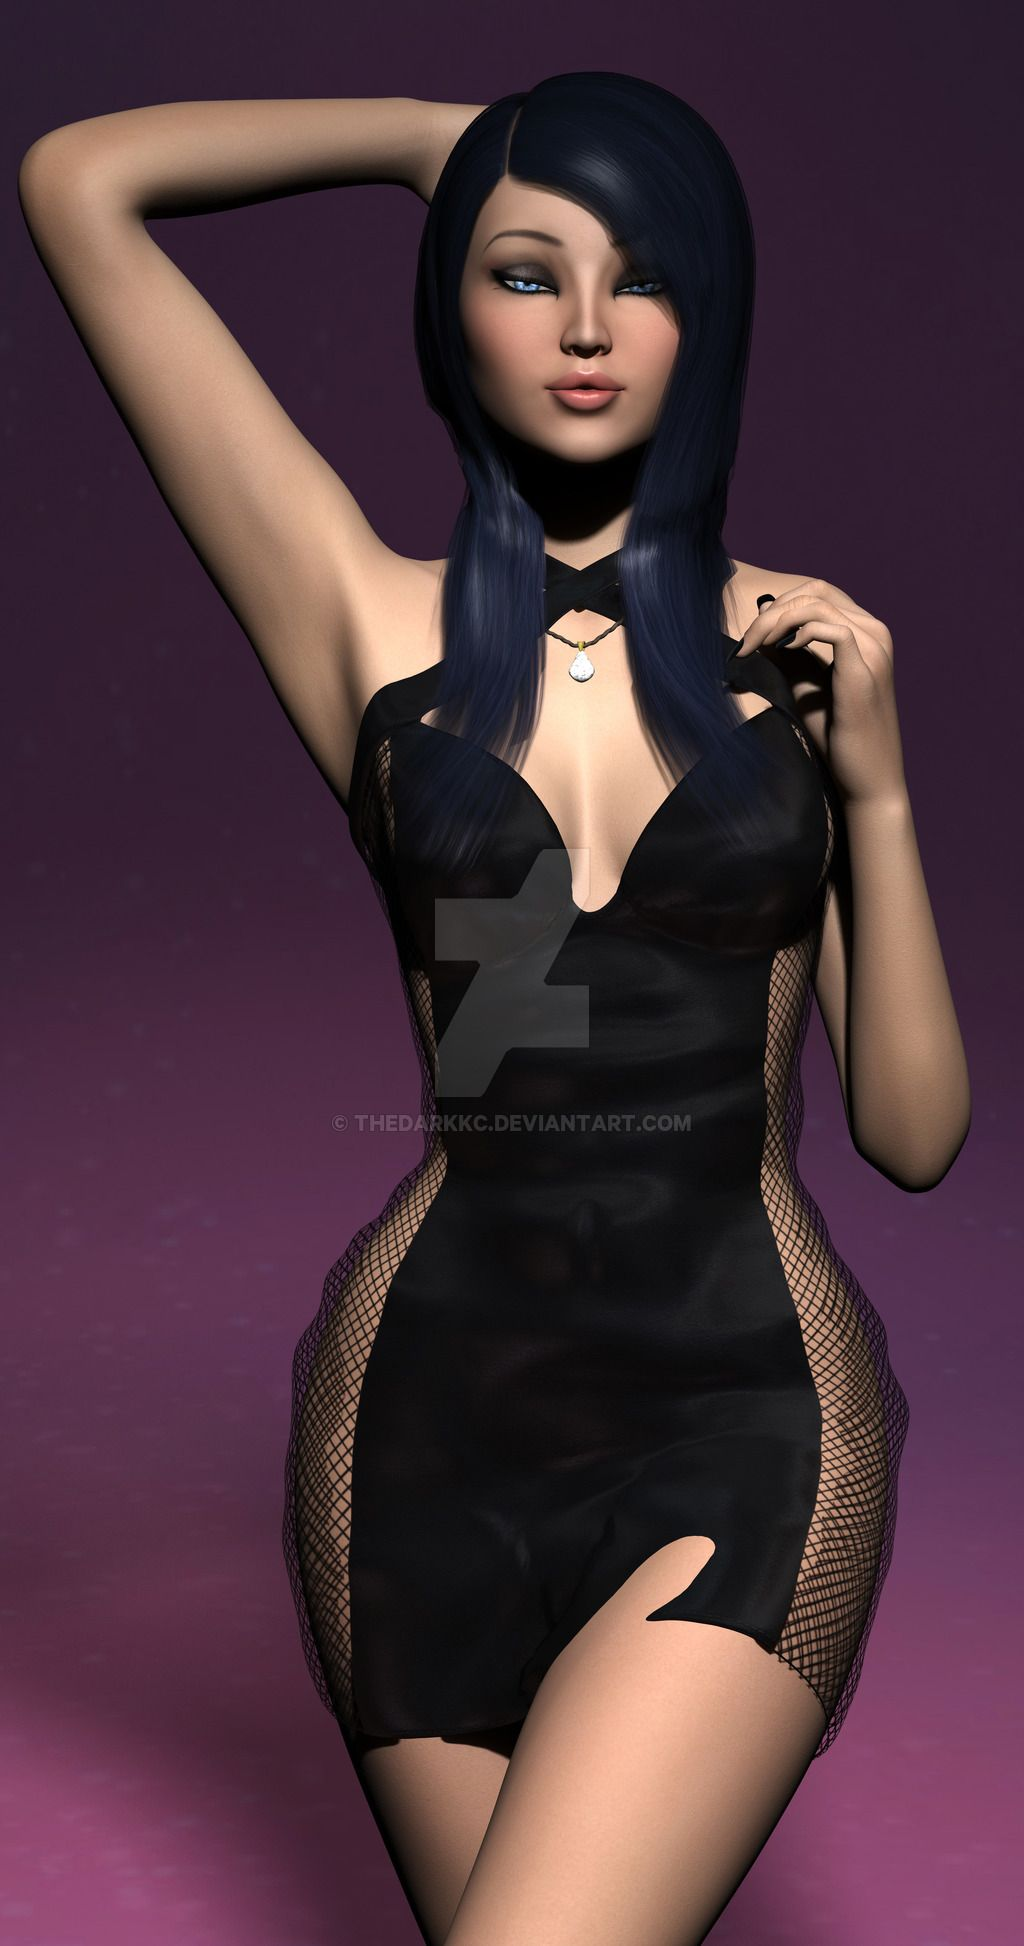 52aabb85226 Kc lil black dress by TheDarkKc.deviantart.com on  DeviantArt ...